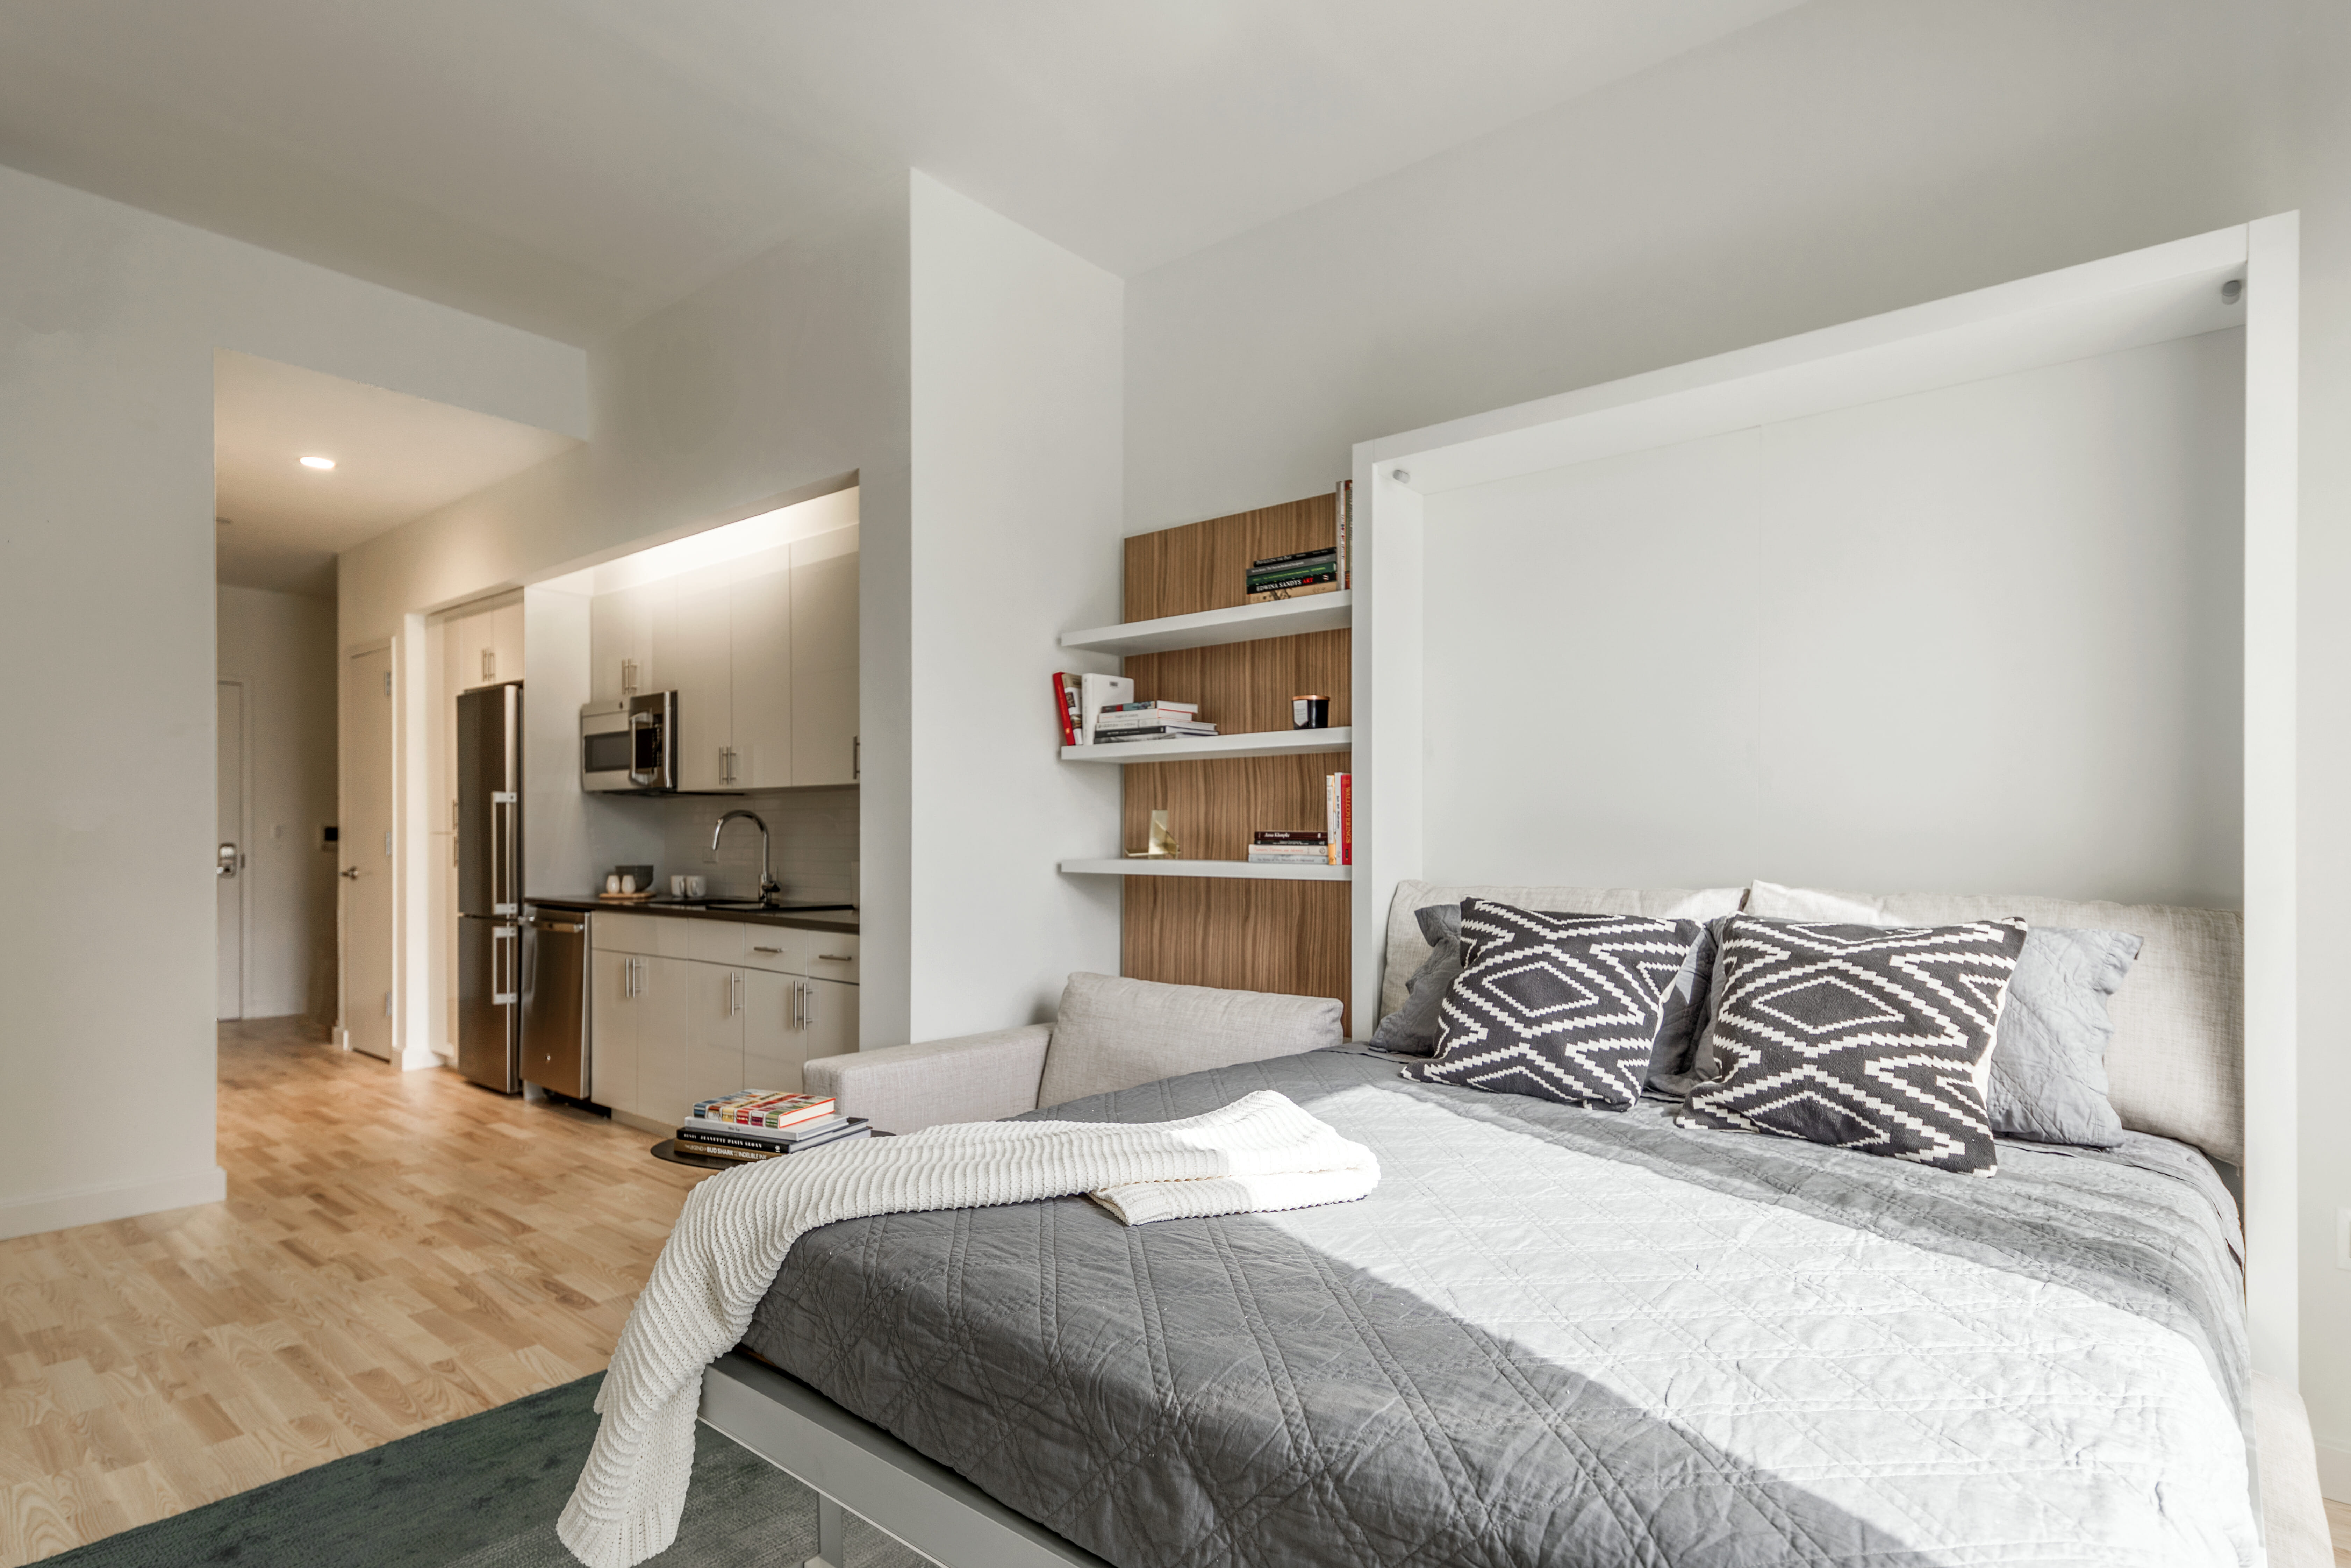 Co-living: Not Just for Millennials Anymore